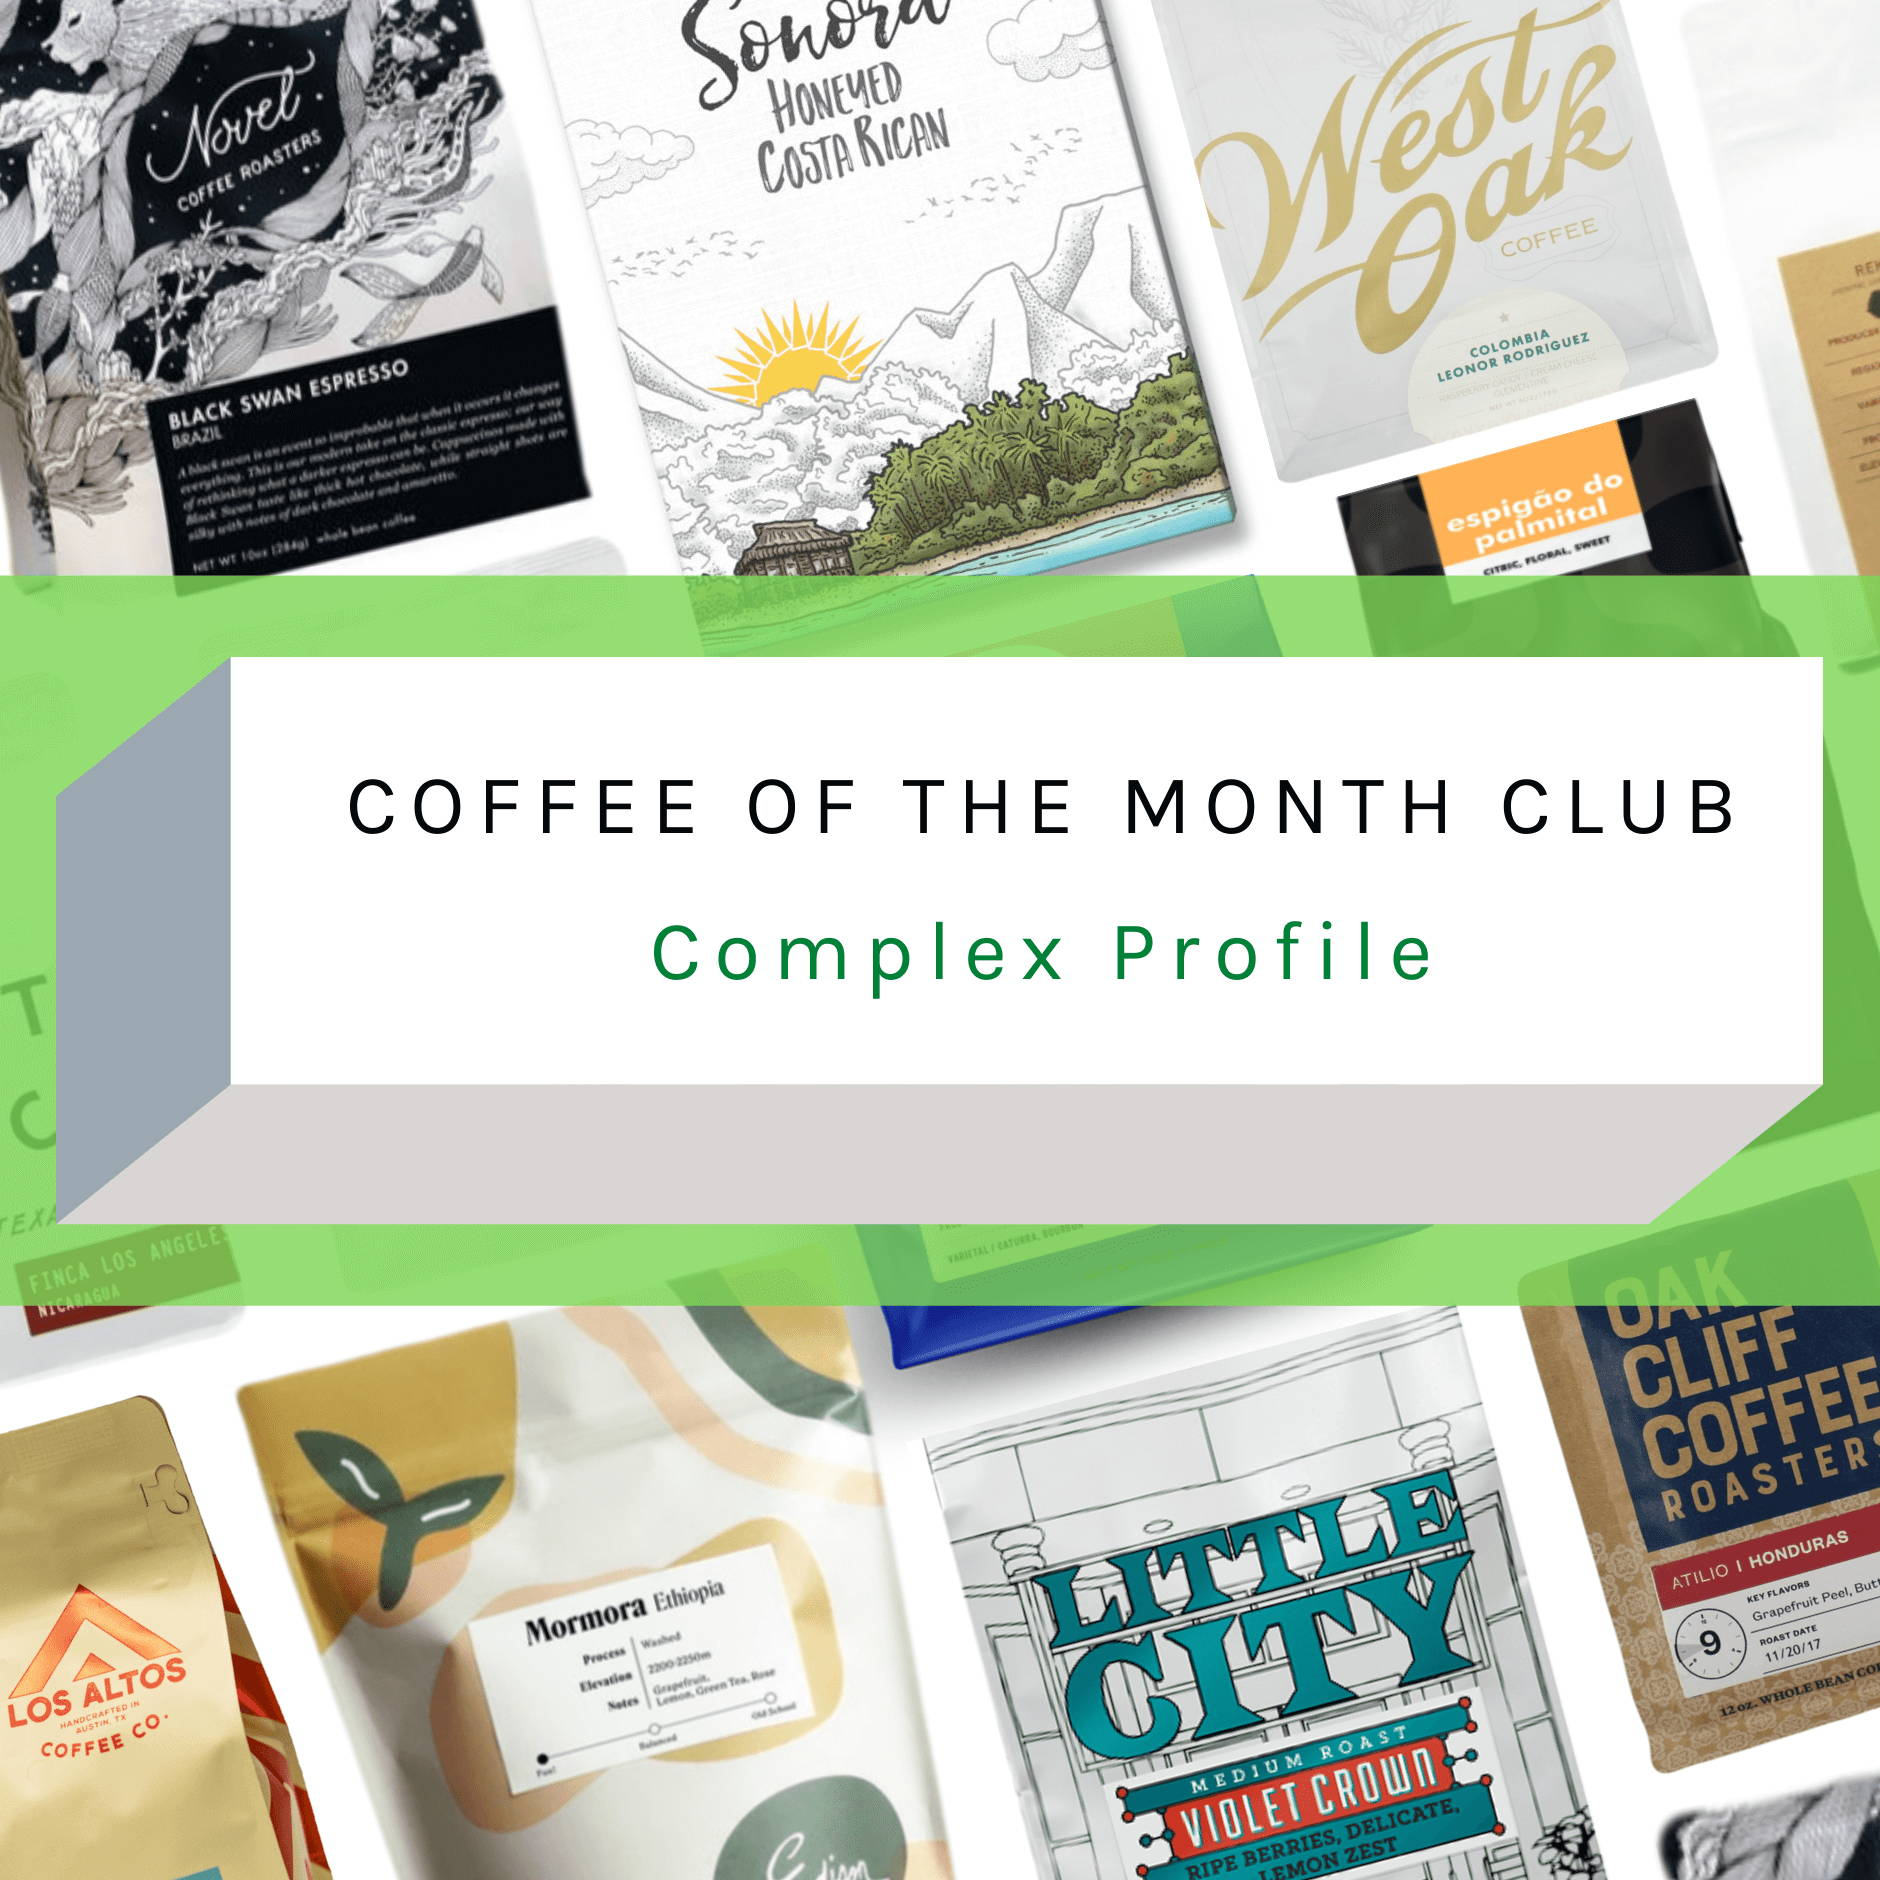 Creature Coffee Co - Texas Coffee Roasters - Texas Coffee - creature coffee subscription - texas coffee subscription - buy coffee beans - buy gift coffee subscription - coffee of the month - buy coffee - buy beans - fresh coffee beans - specialty coffee in texas